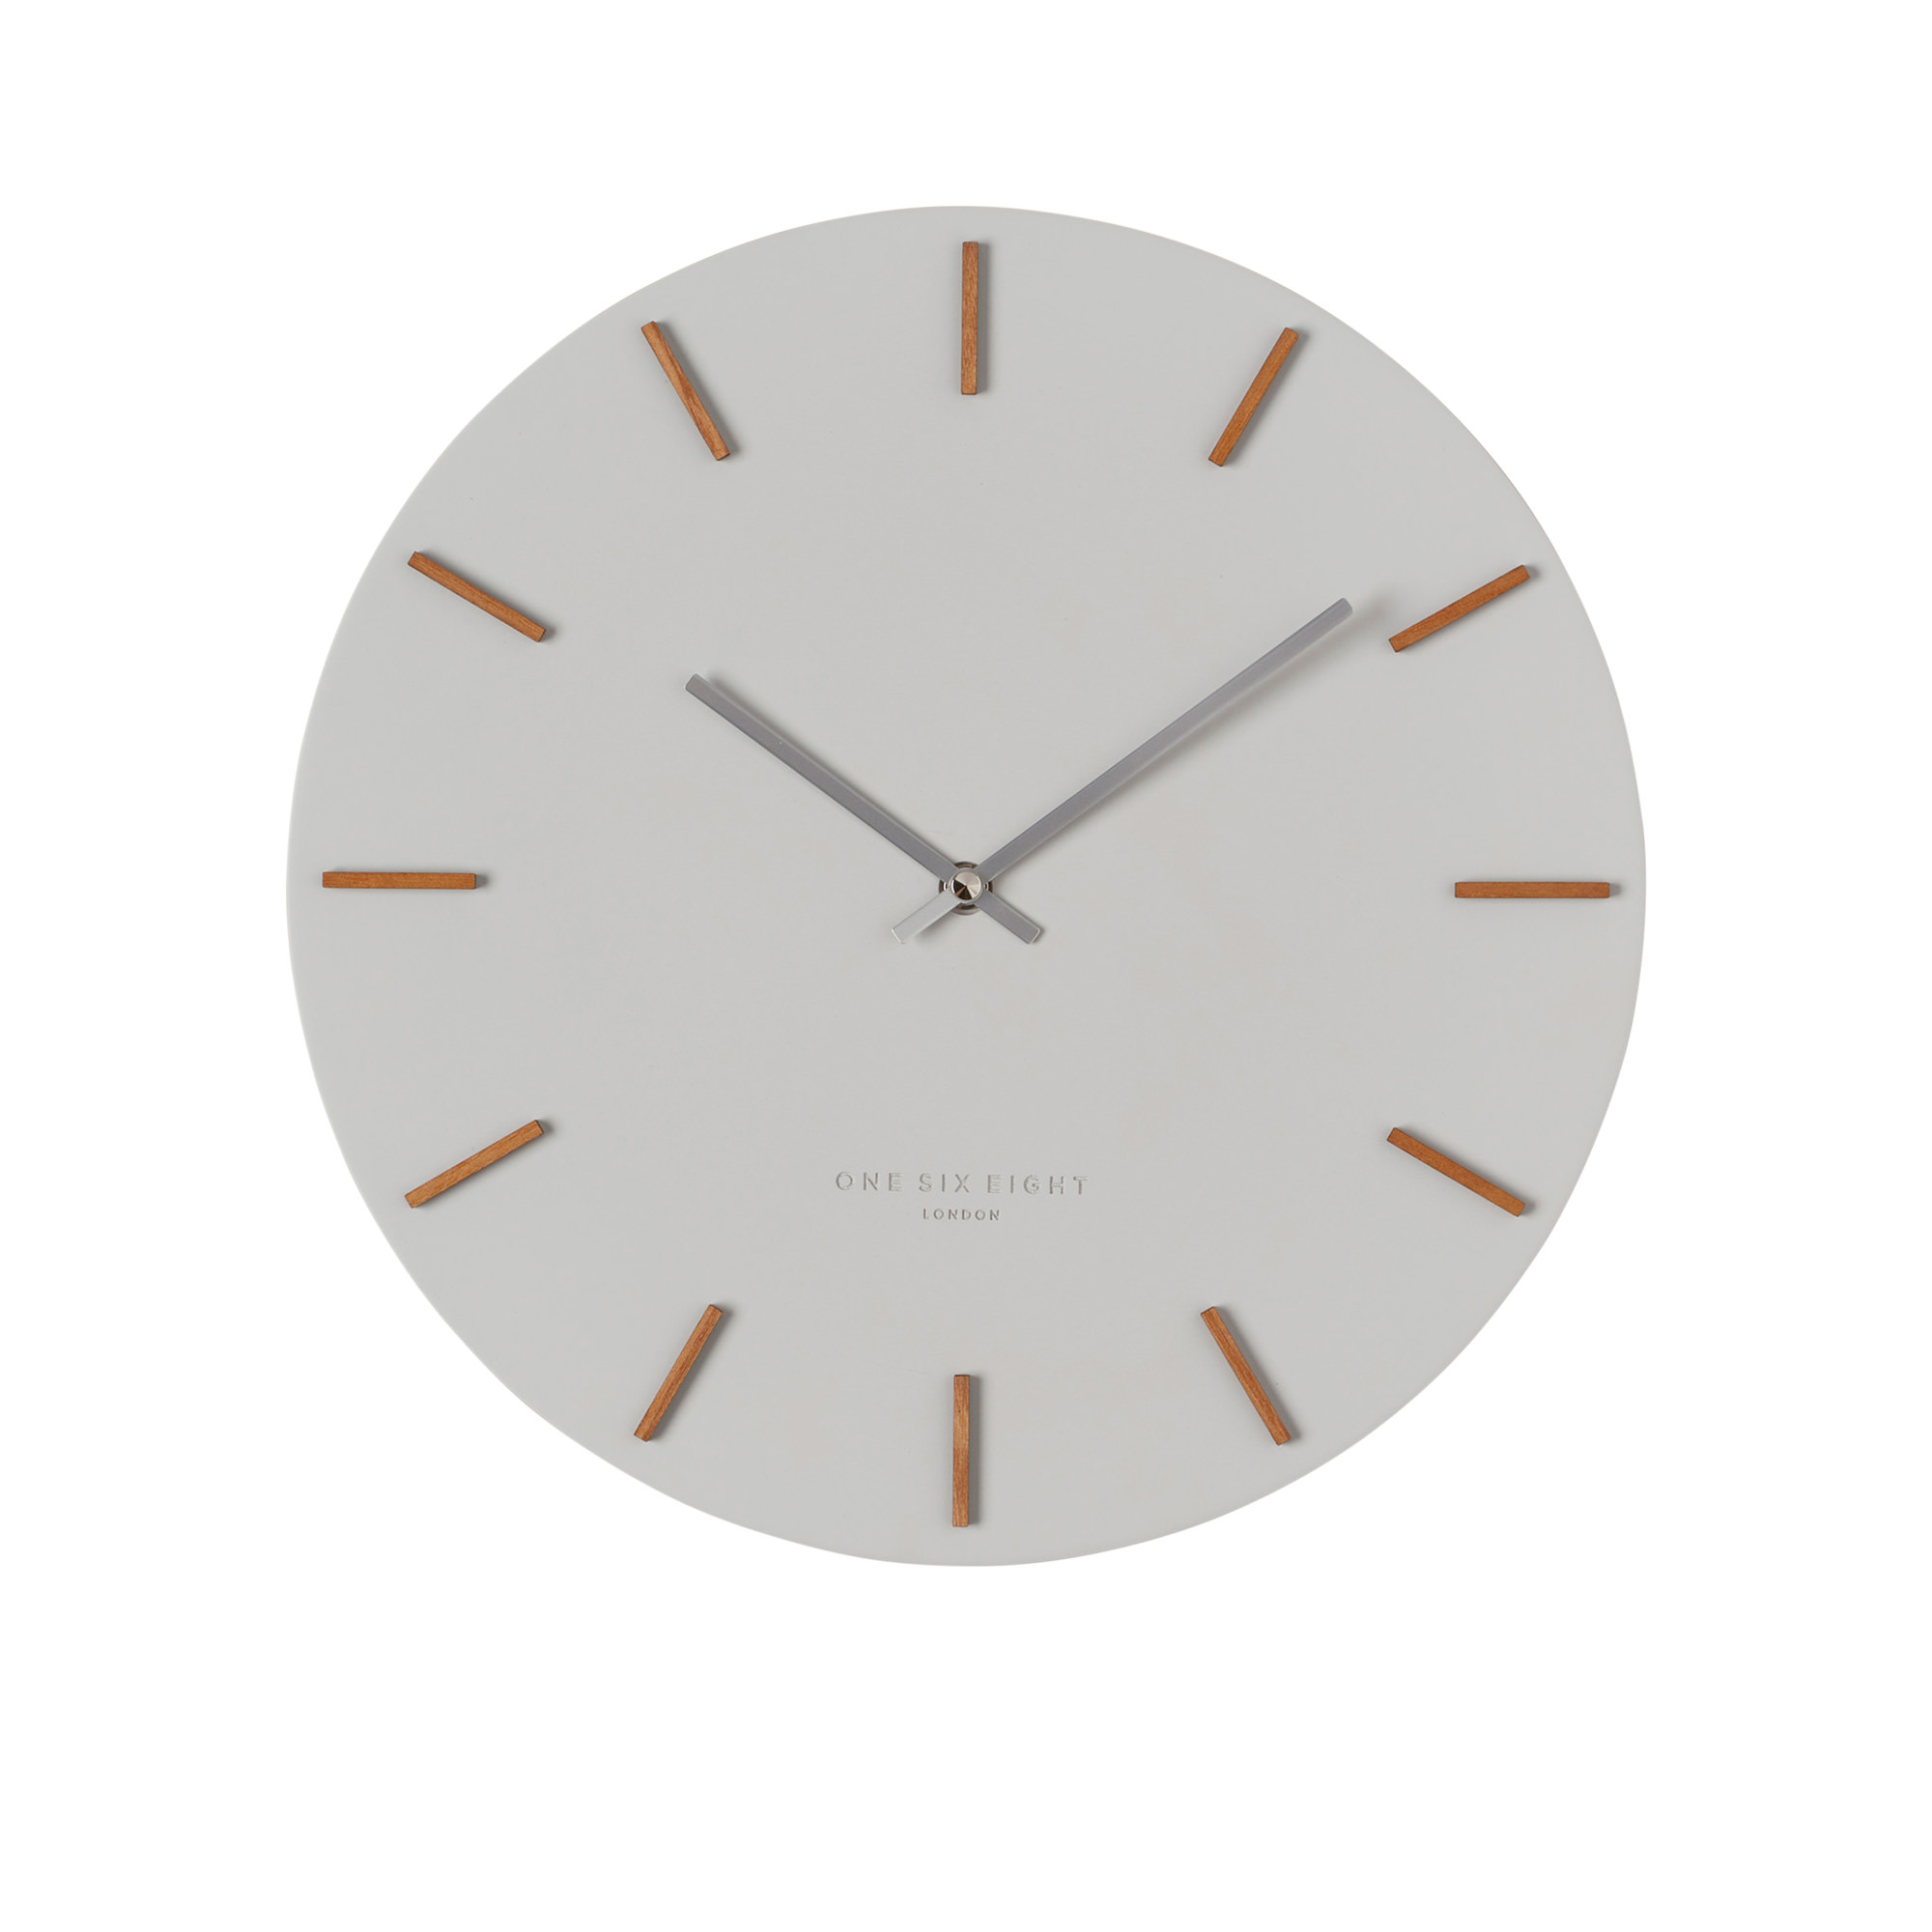 One Six Eight London Ivy Cool Silent Wall Clock 35cm Cool Grey